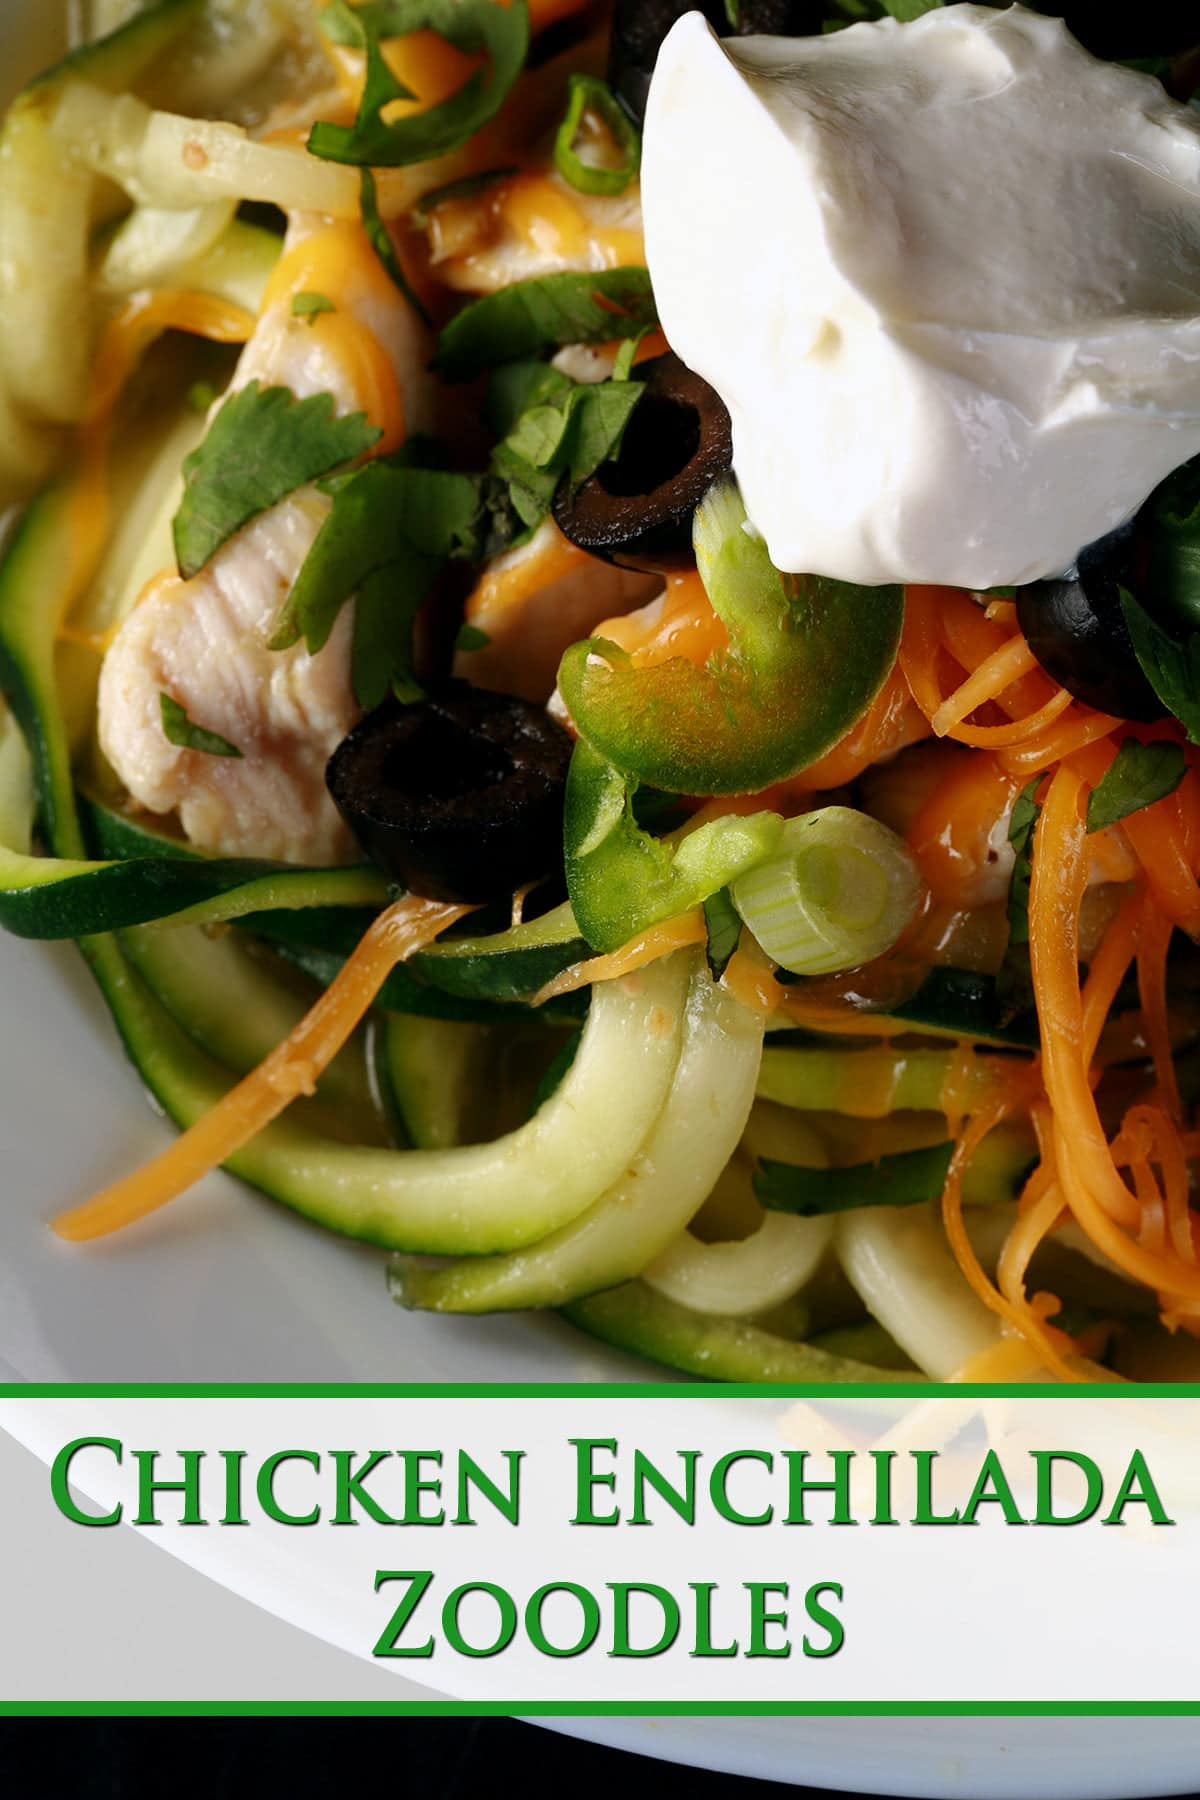 A close up view of chicken enchilada zoodles - a low carb, gluten-free meal of sauteed chicken and zuchinni noodles in salsa verde, topped with cheese, green onions, cilantro, black olives, and sour cream.